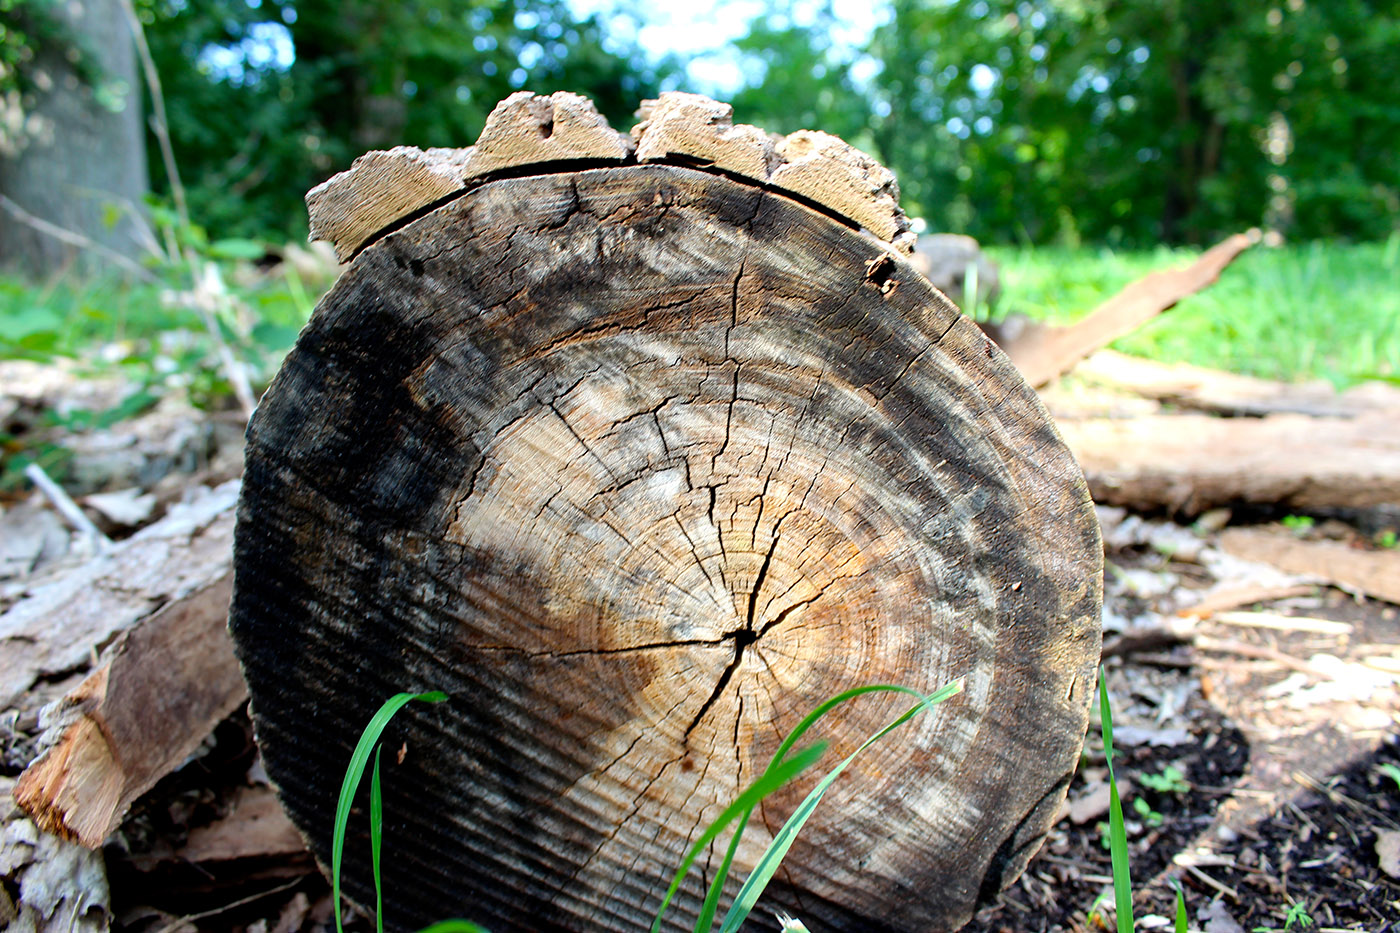 You can chart this tree's history by its rings, but only Kathy Leisen can tune you into what it has to say.